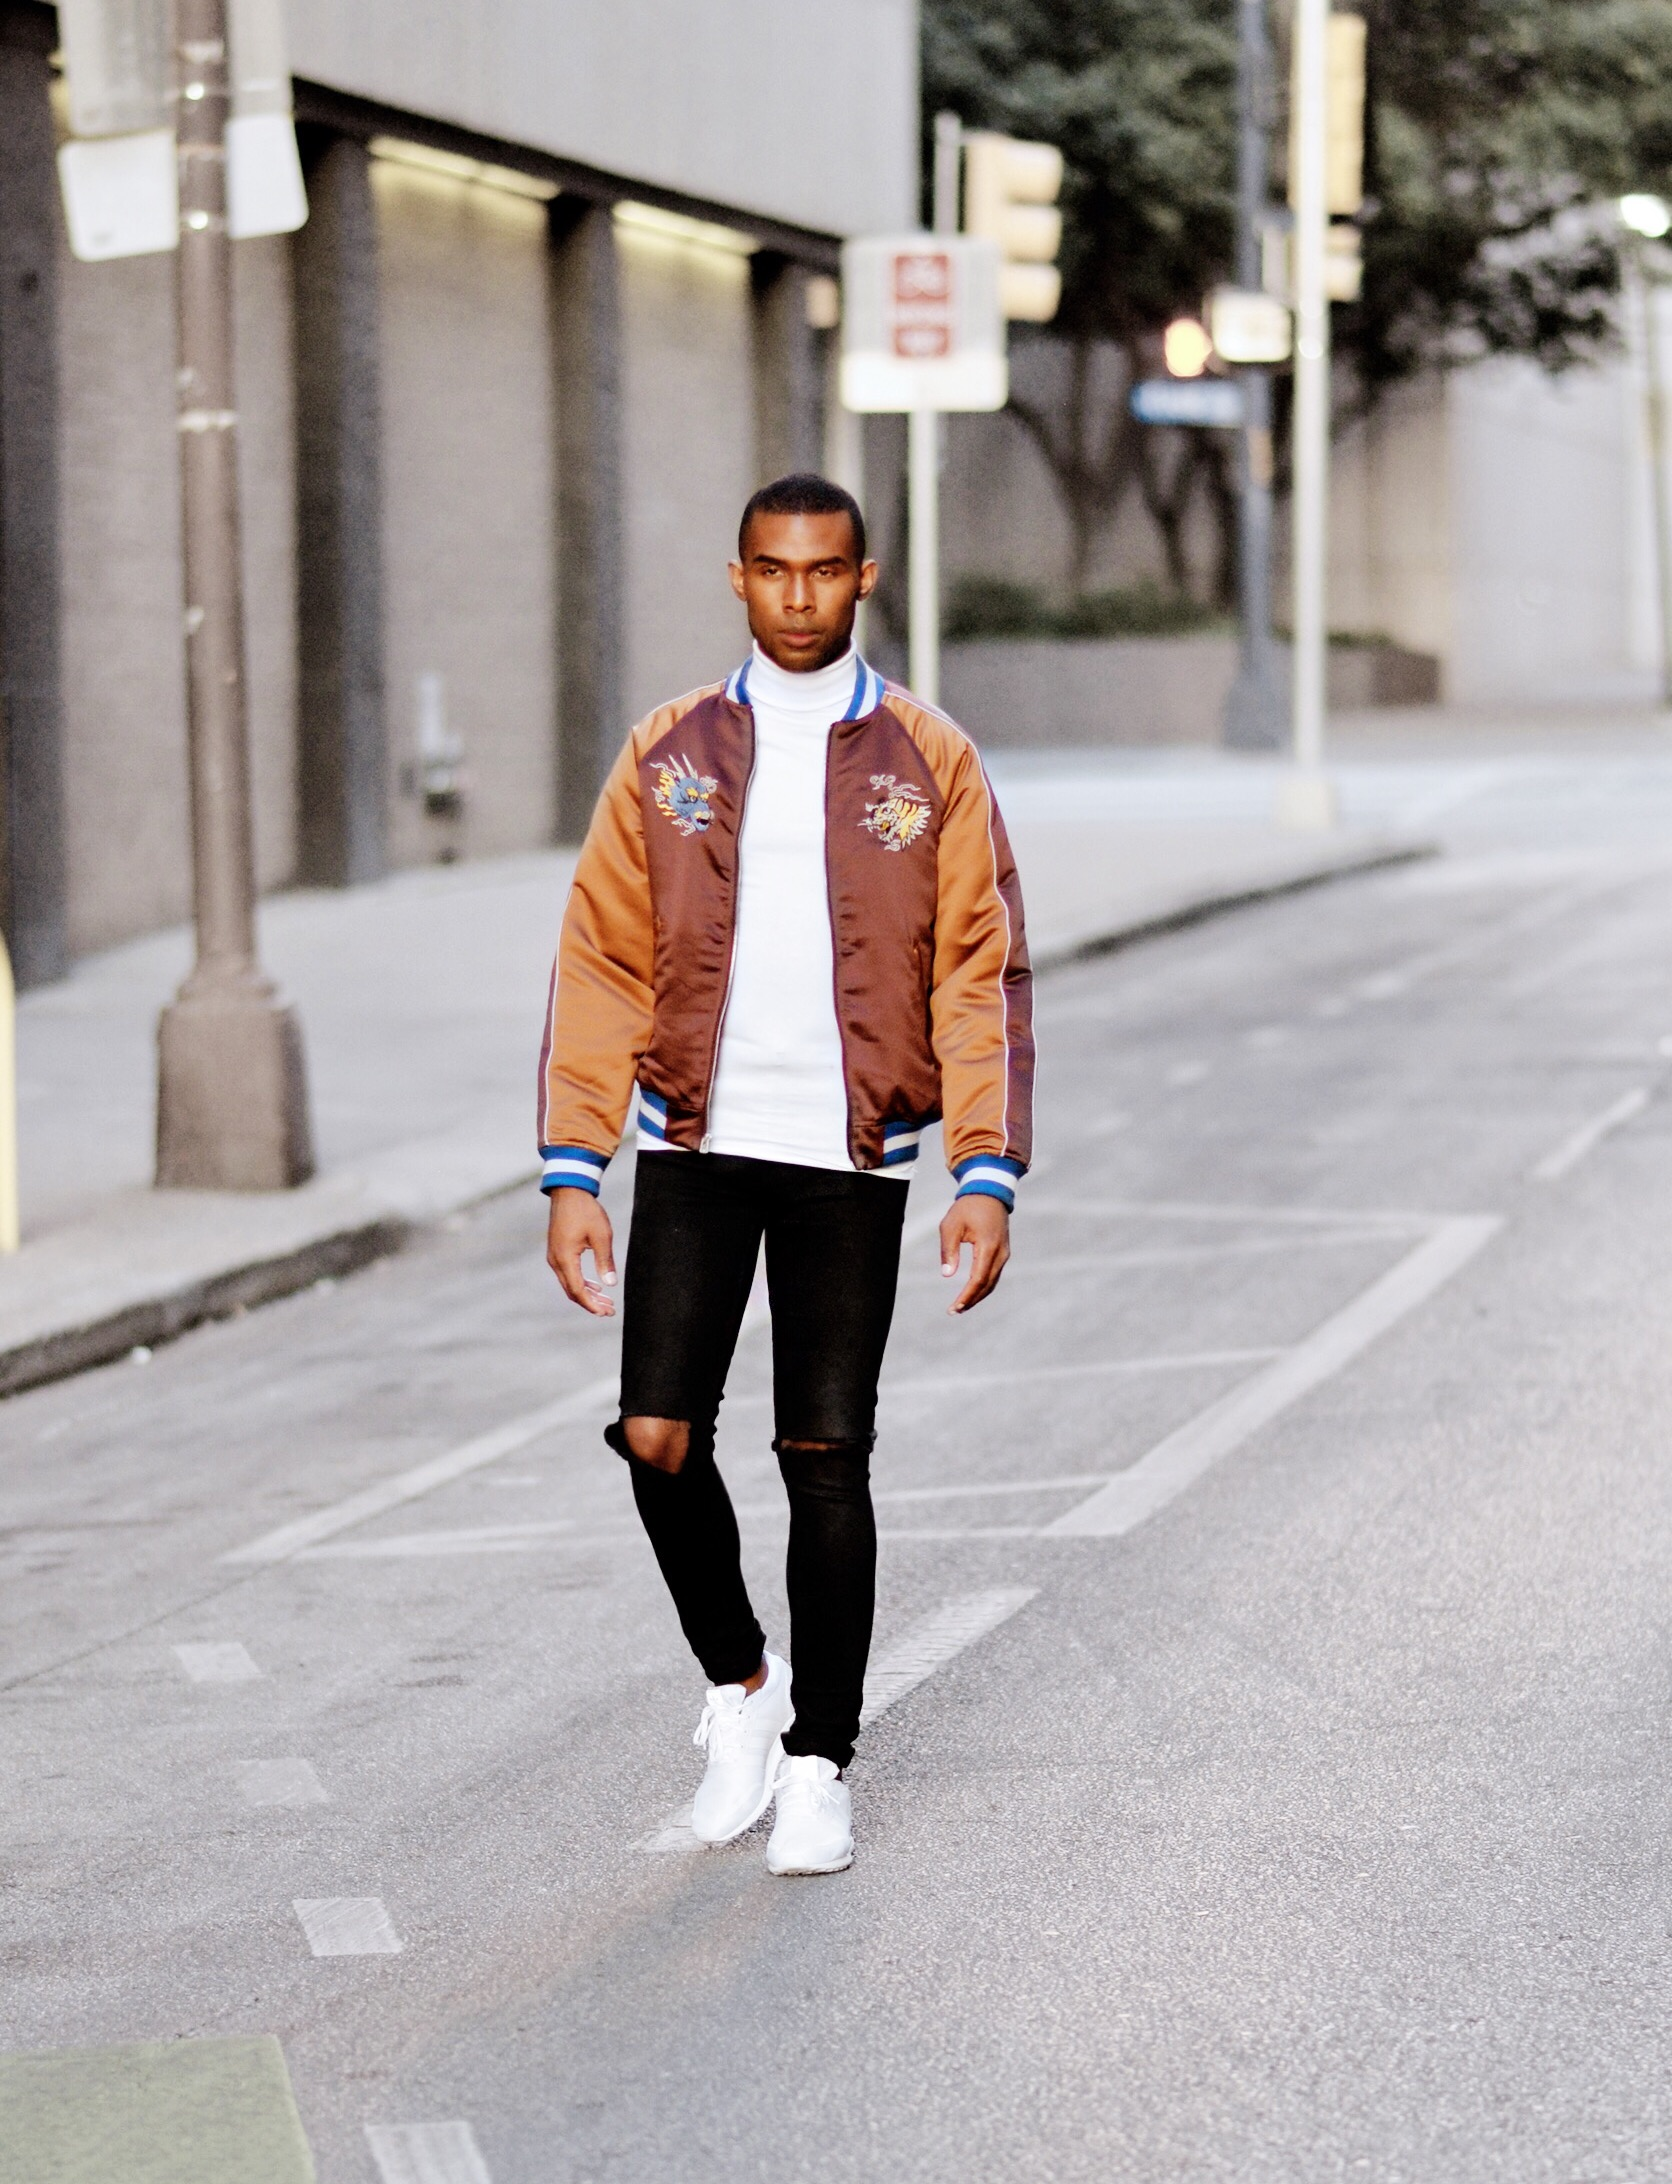 The-Look-Principle-Urban-Outfitters-Embroidered-Souvenir-Bomber-Jacket.jpg